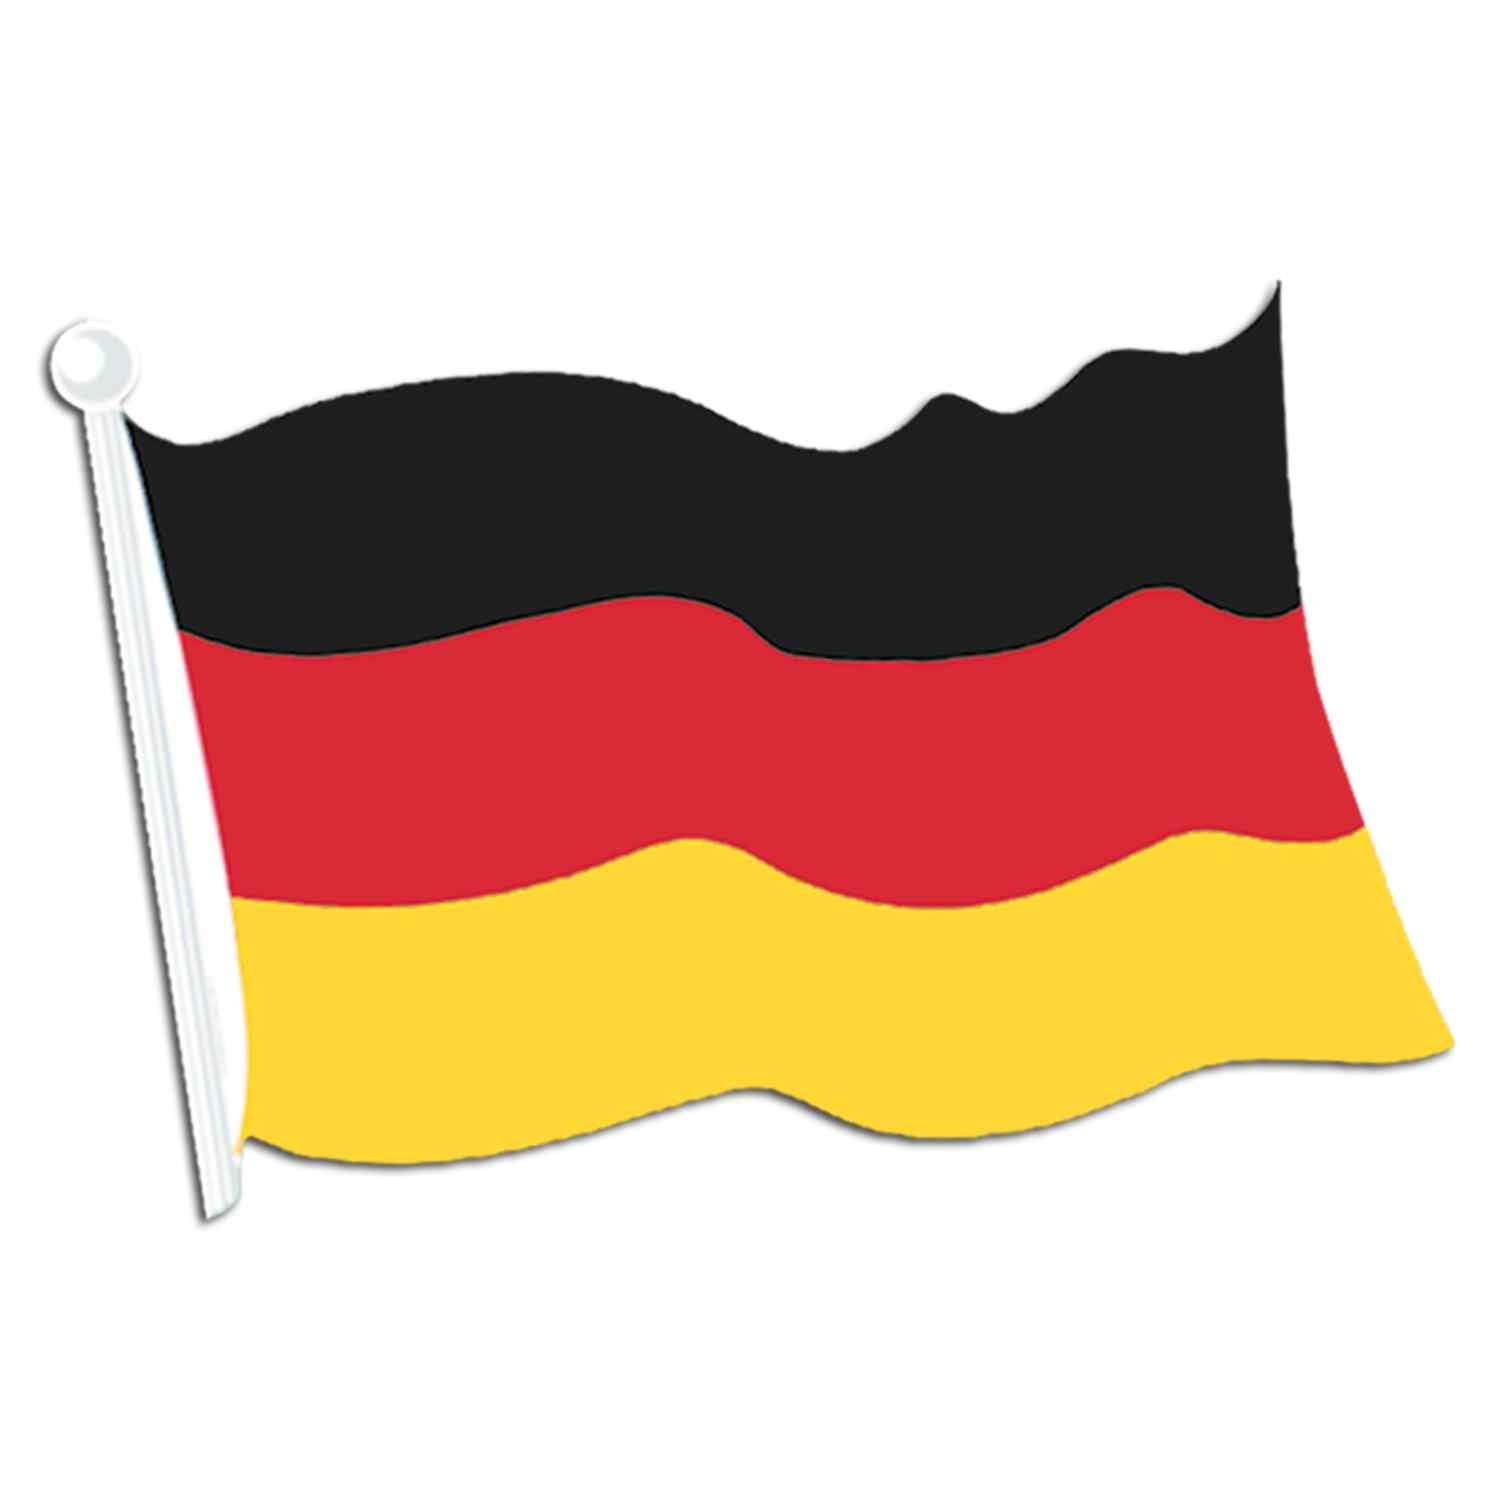 german_flag_cutout_18in_oktoberfest_party_decorations_55896_18